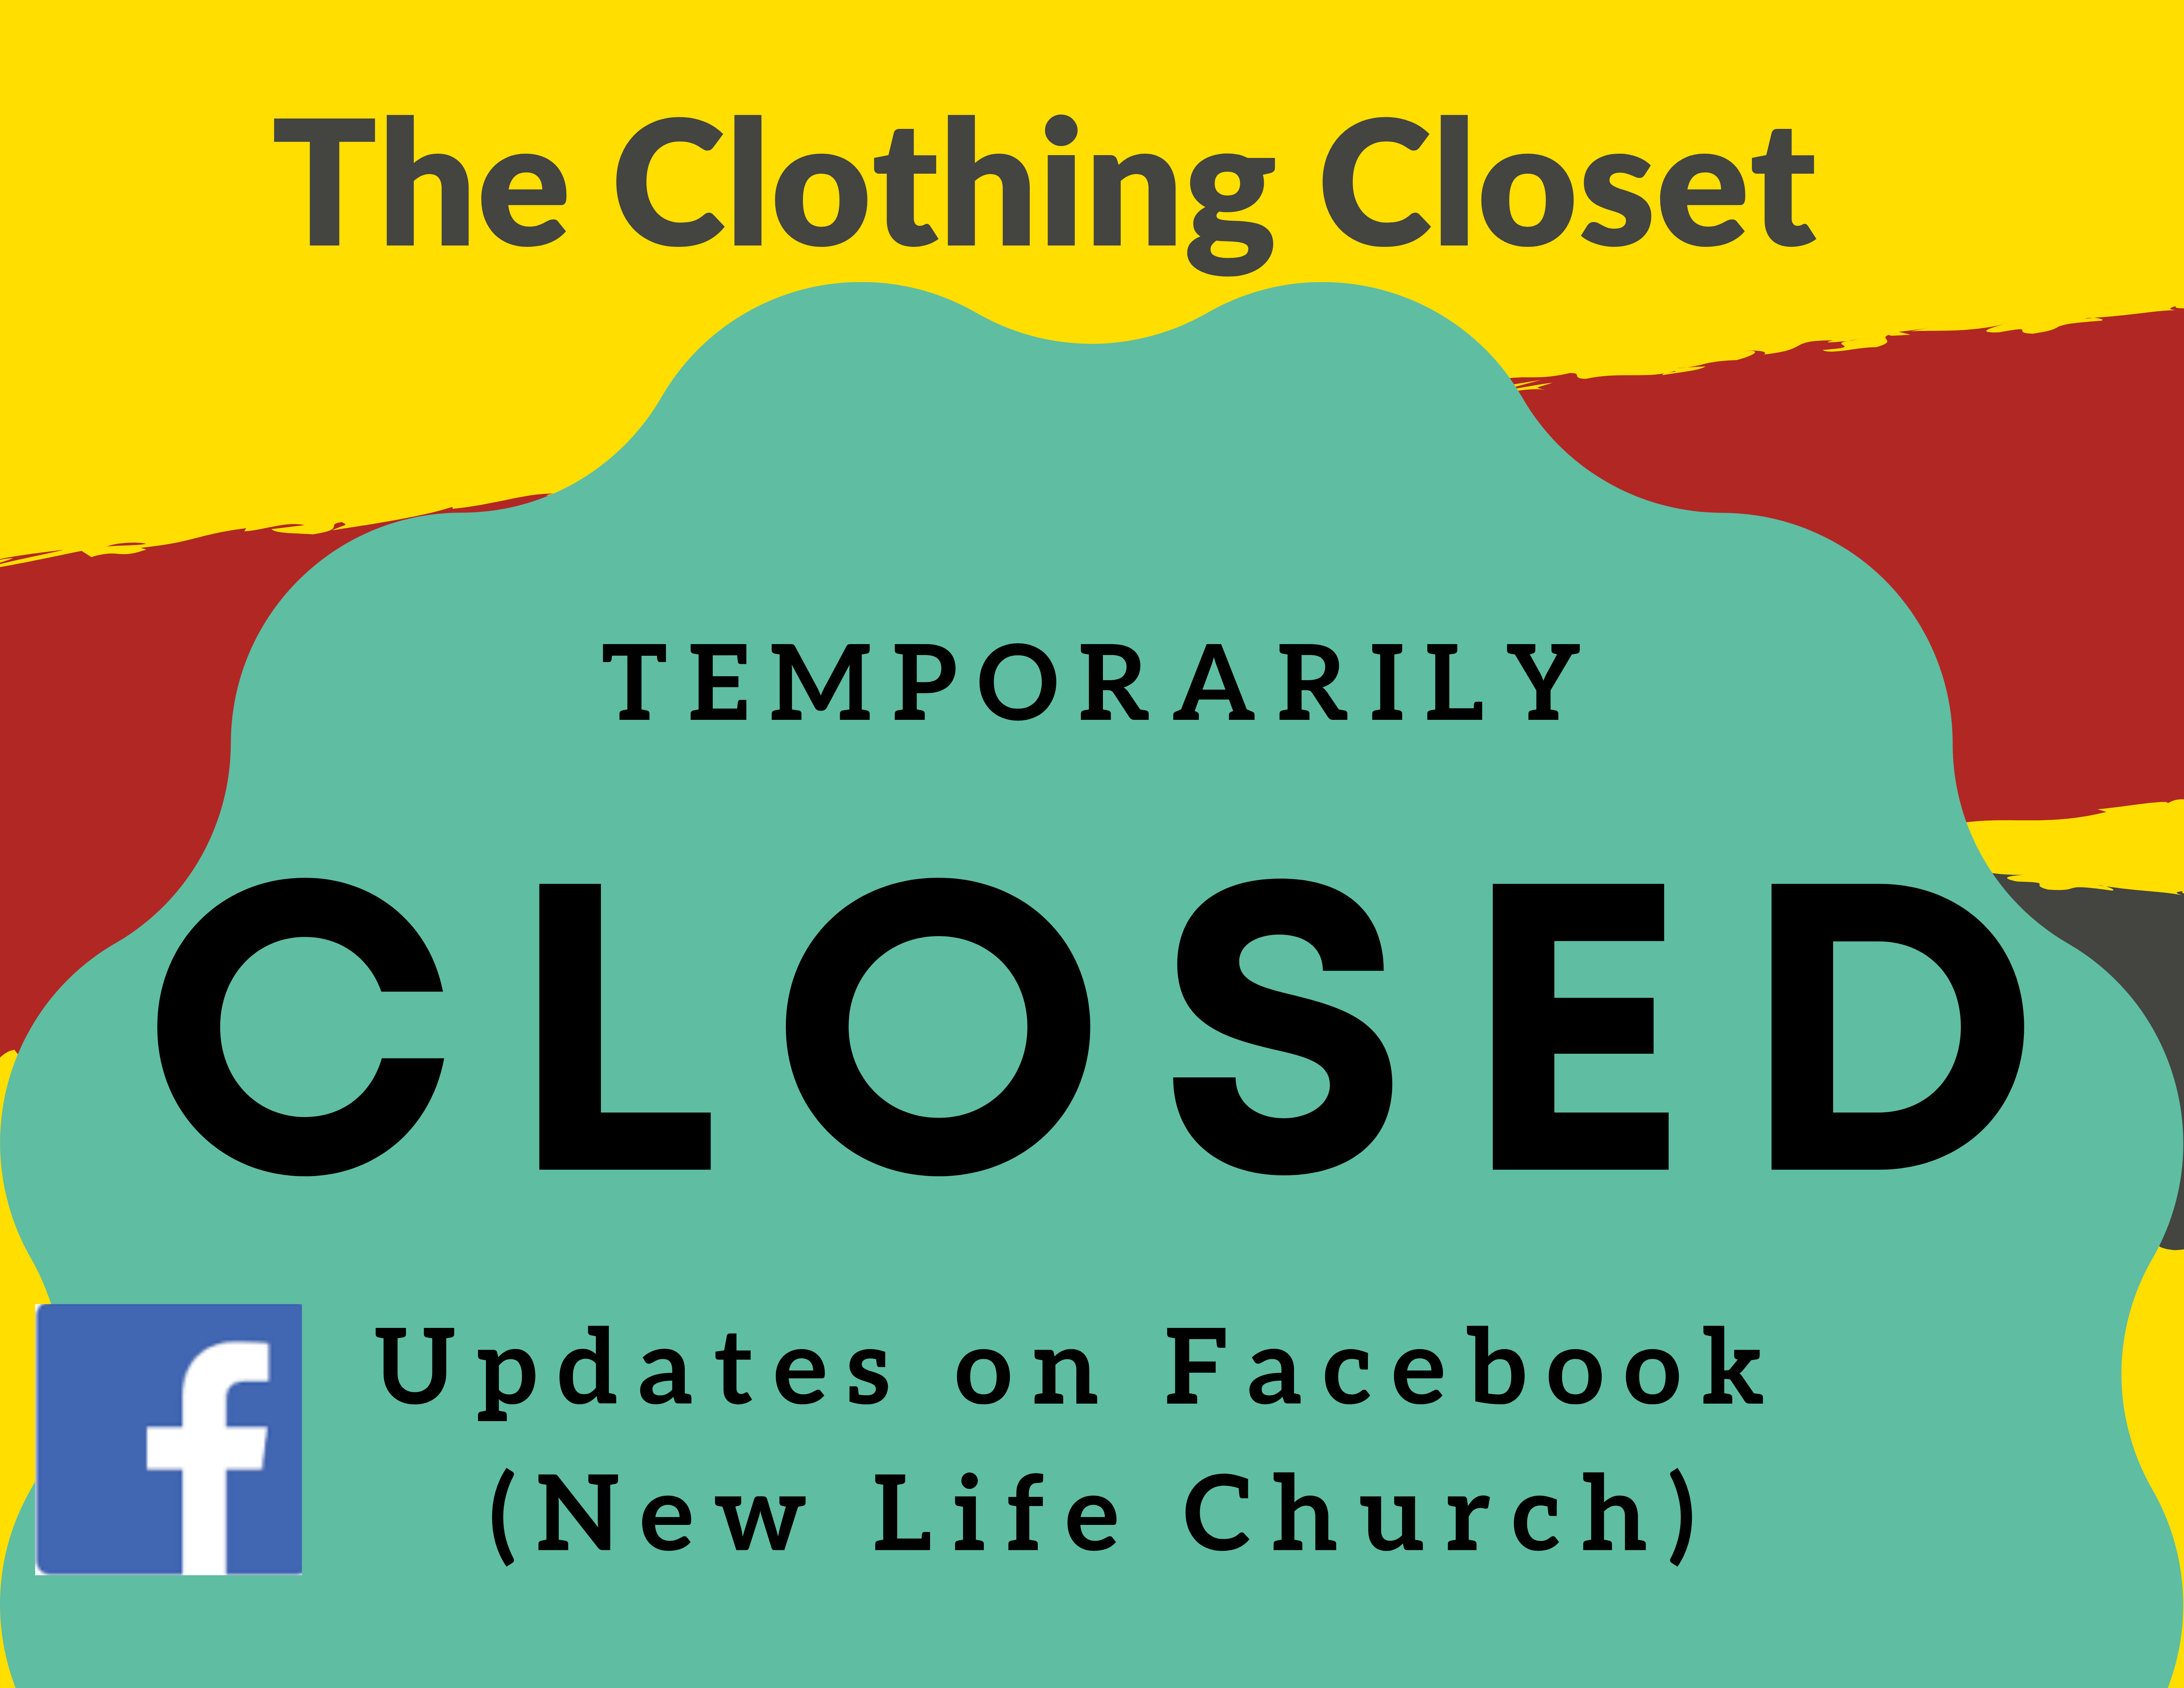 CLOSED DUE TO COVID Clothing Closet post